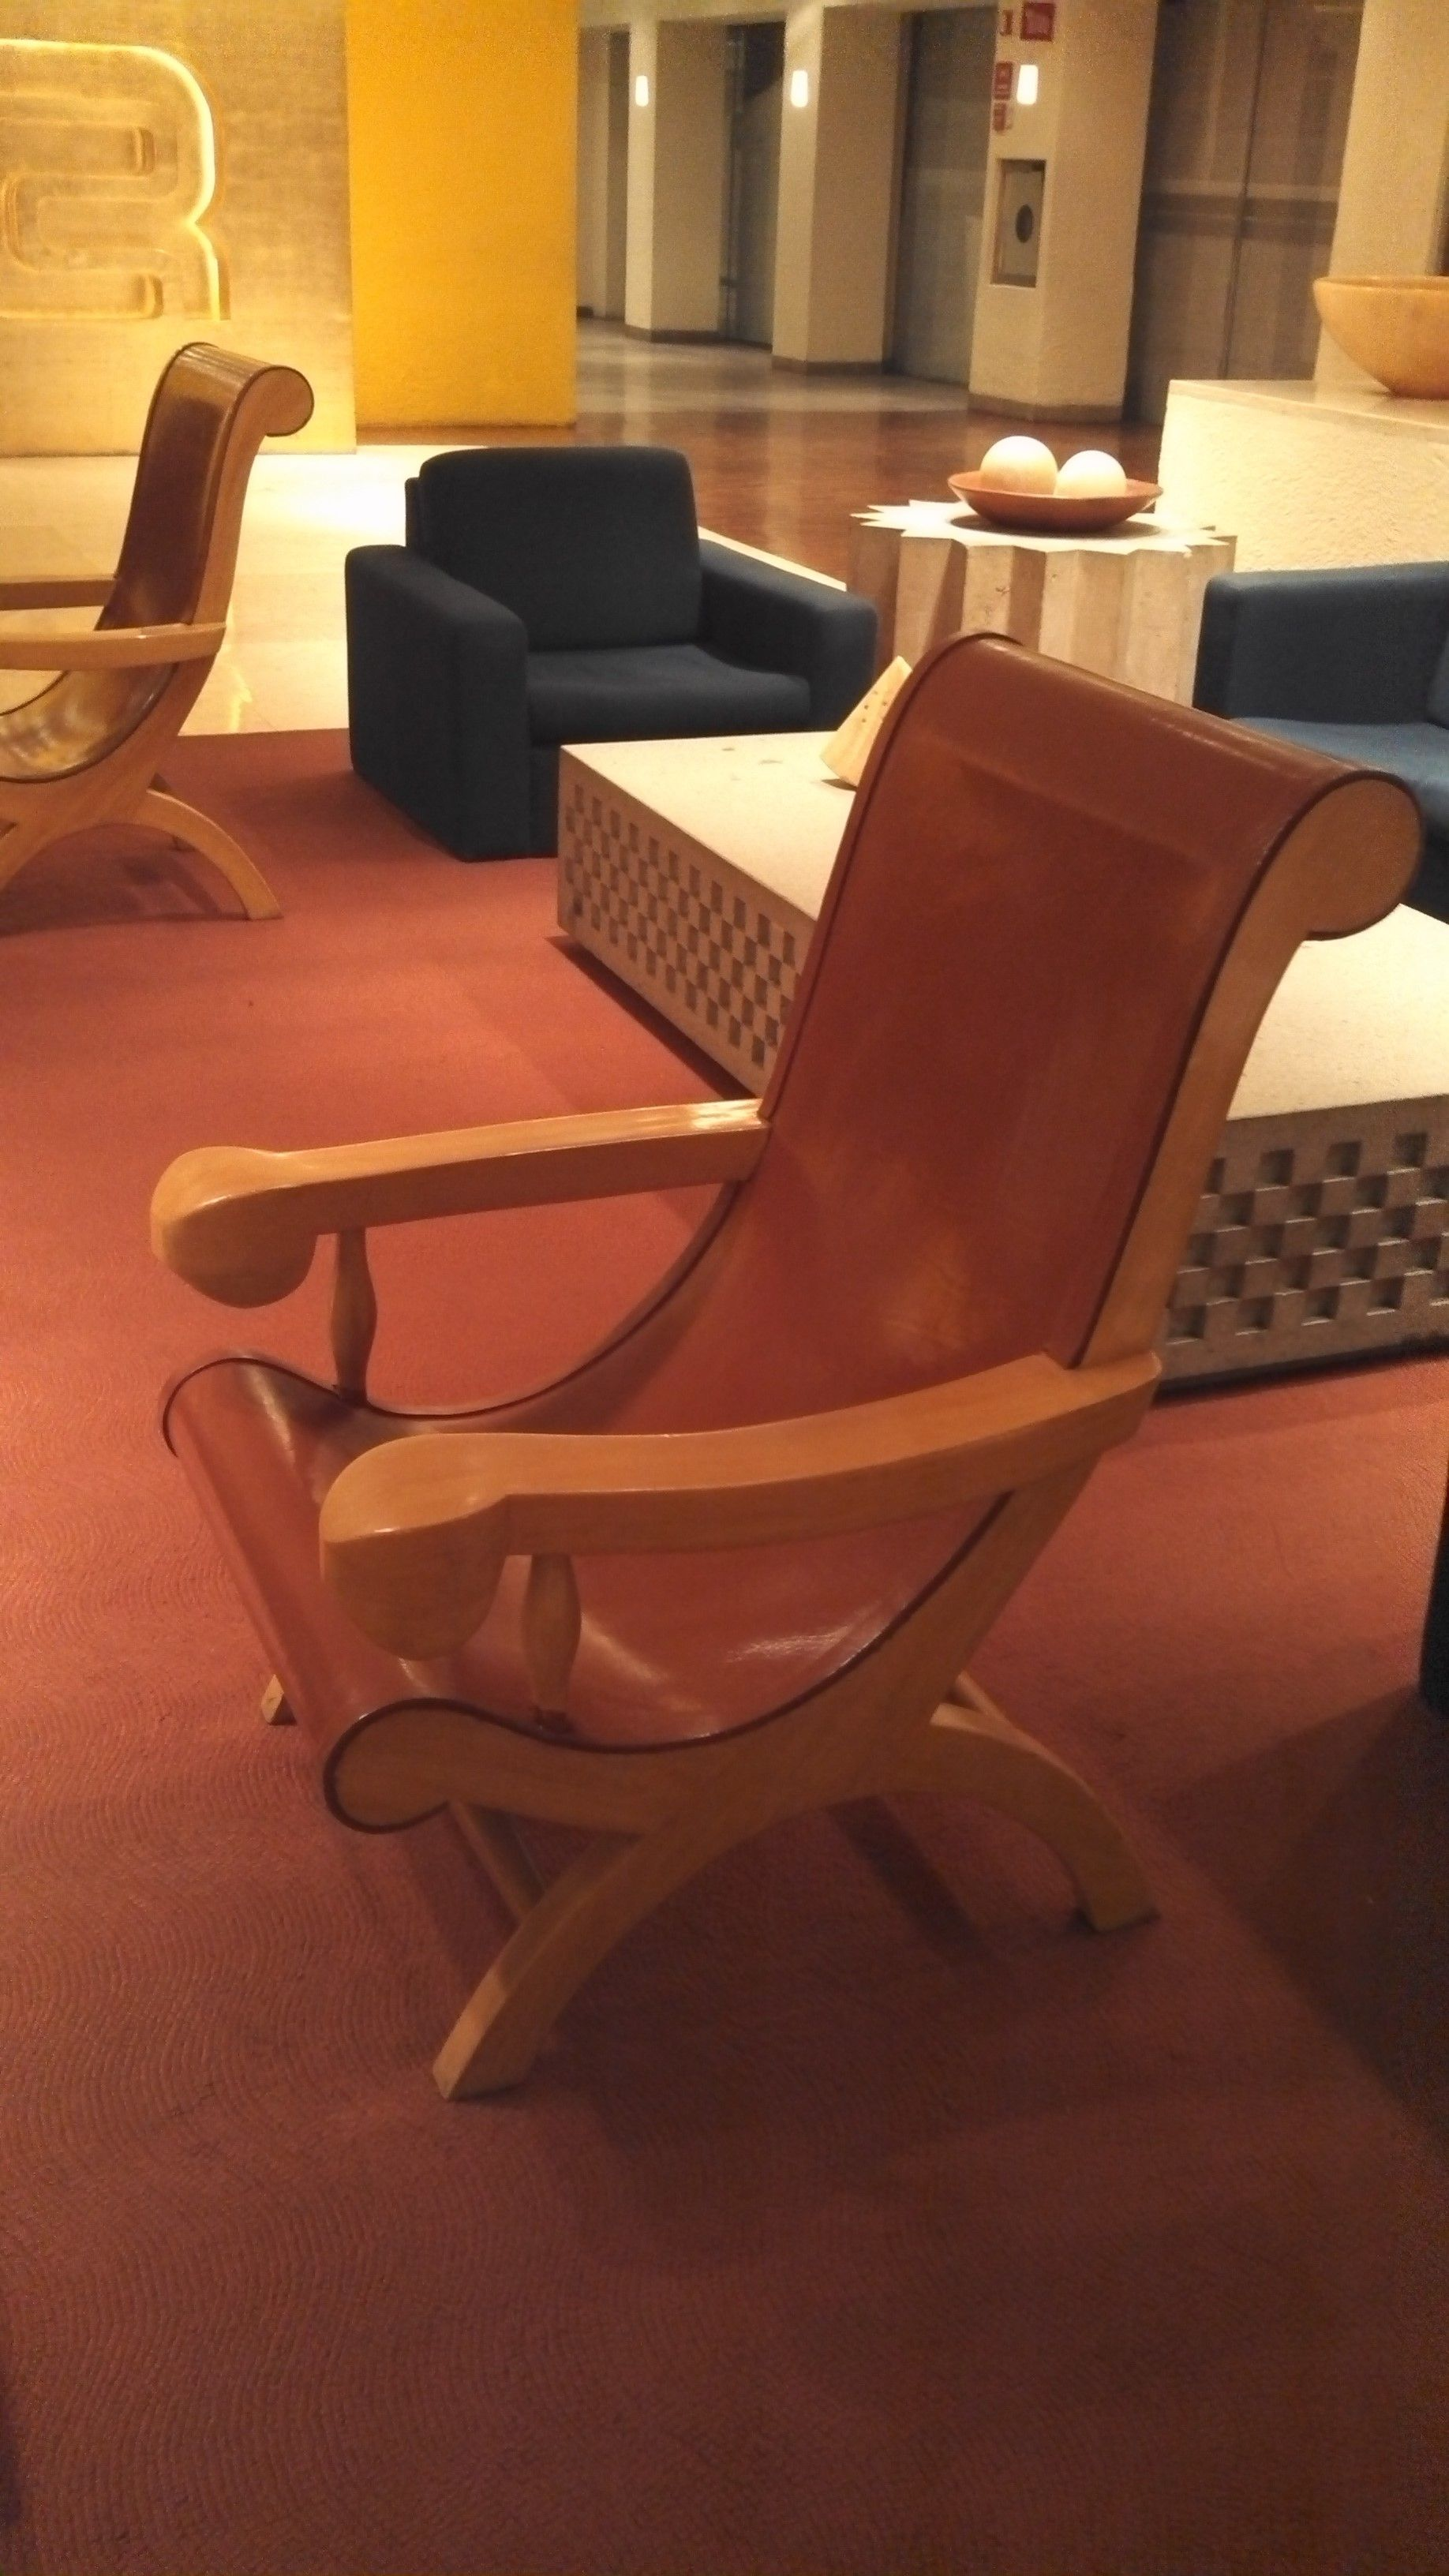 Cedar Wood And Vaqueta Leather. Designed By Ricardo Legorreta For The Hotel  Camino Real In. Cedar WoodMexico CityFurniture DesignMexicans